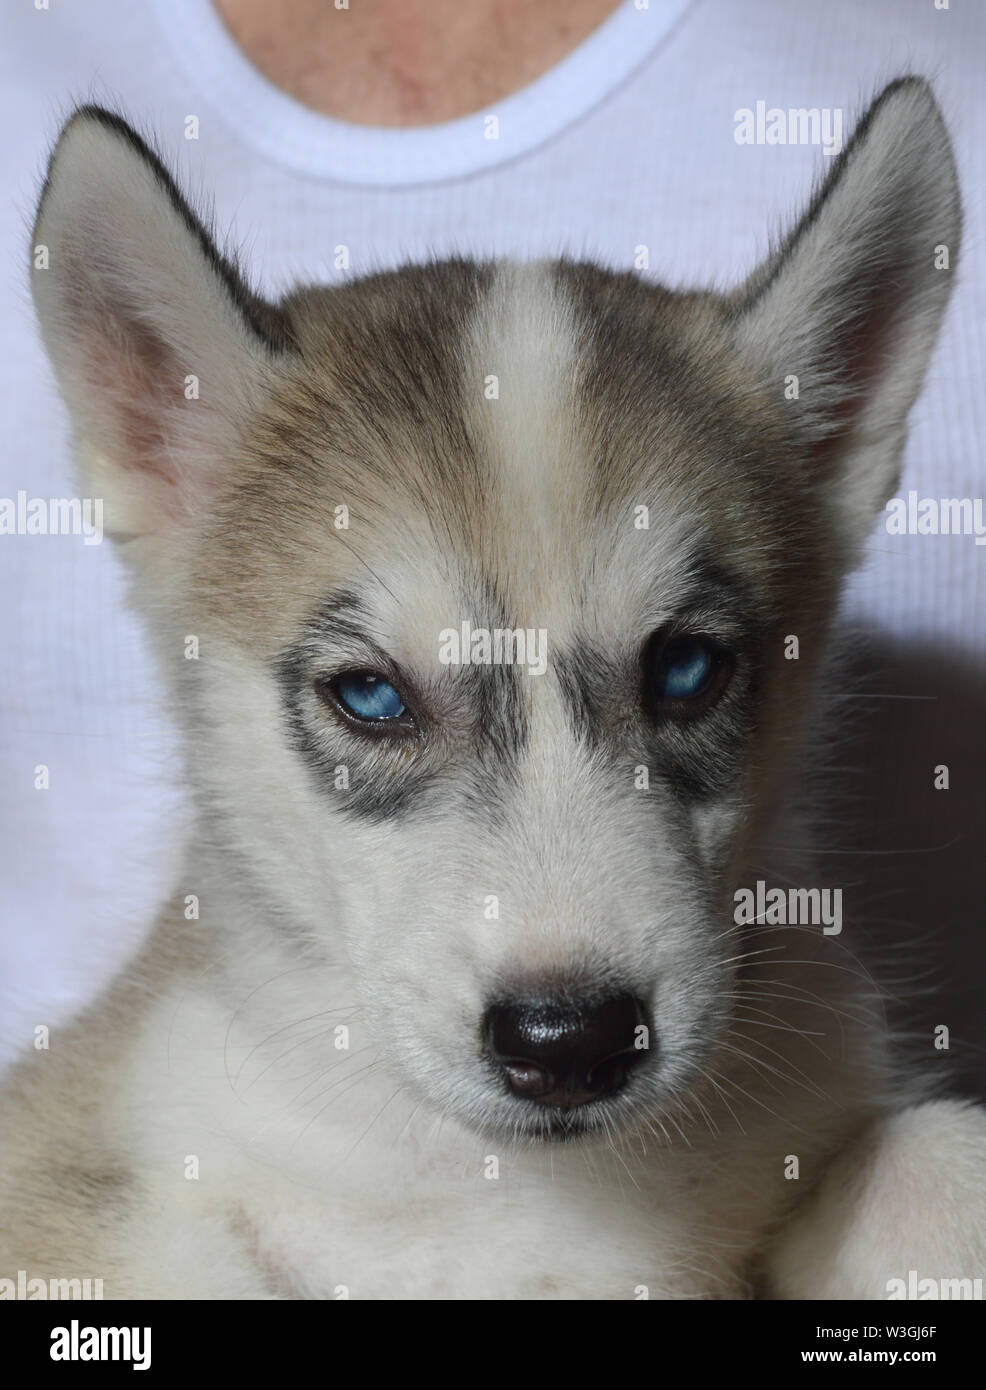 My 53 Day Old Female Siberian Husky Puppy With Blue Eyes And White And Grayish Black Fur Stock Photo Alamy